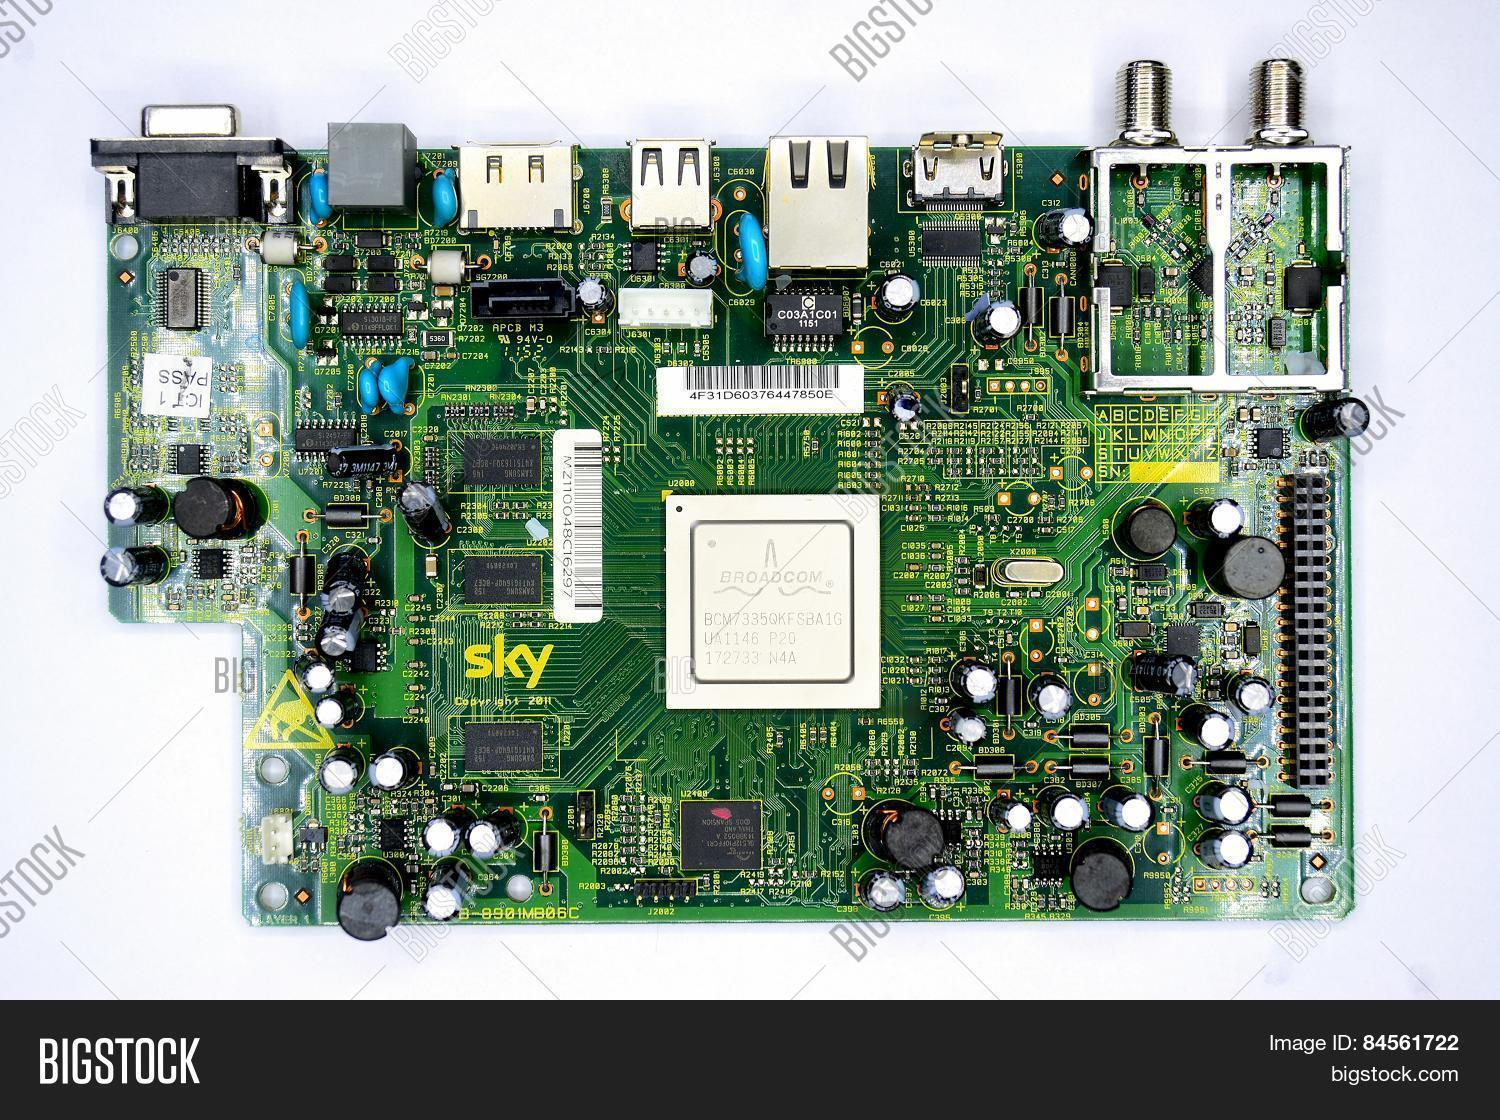 Green Printed Circuit Image Photo Free Trial Bigstock Card Board With Radio Parts